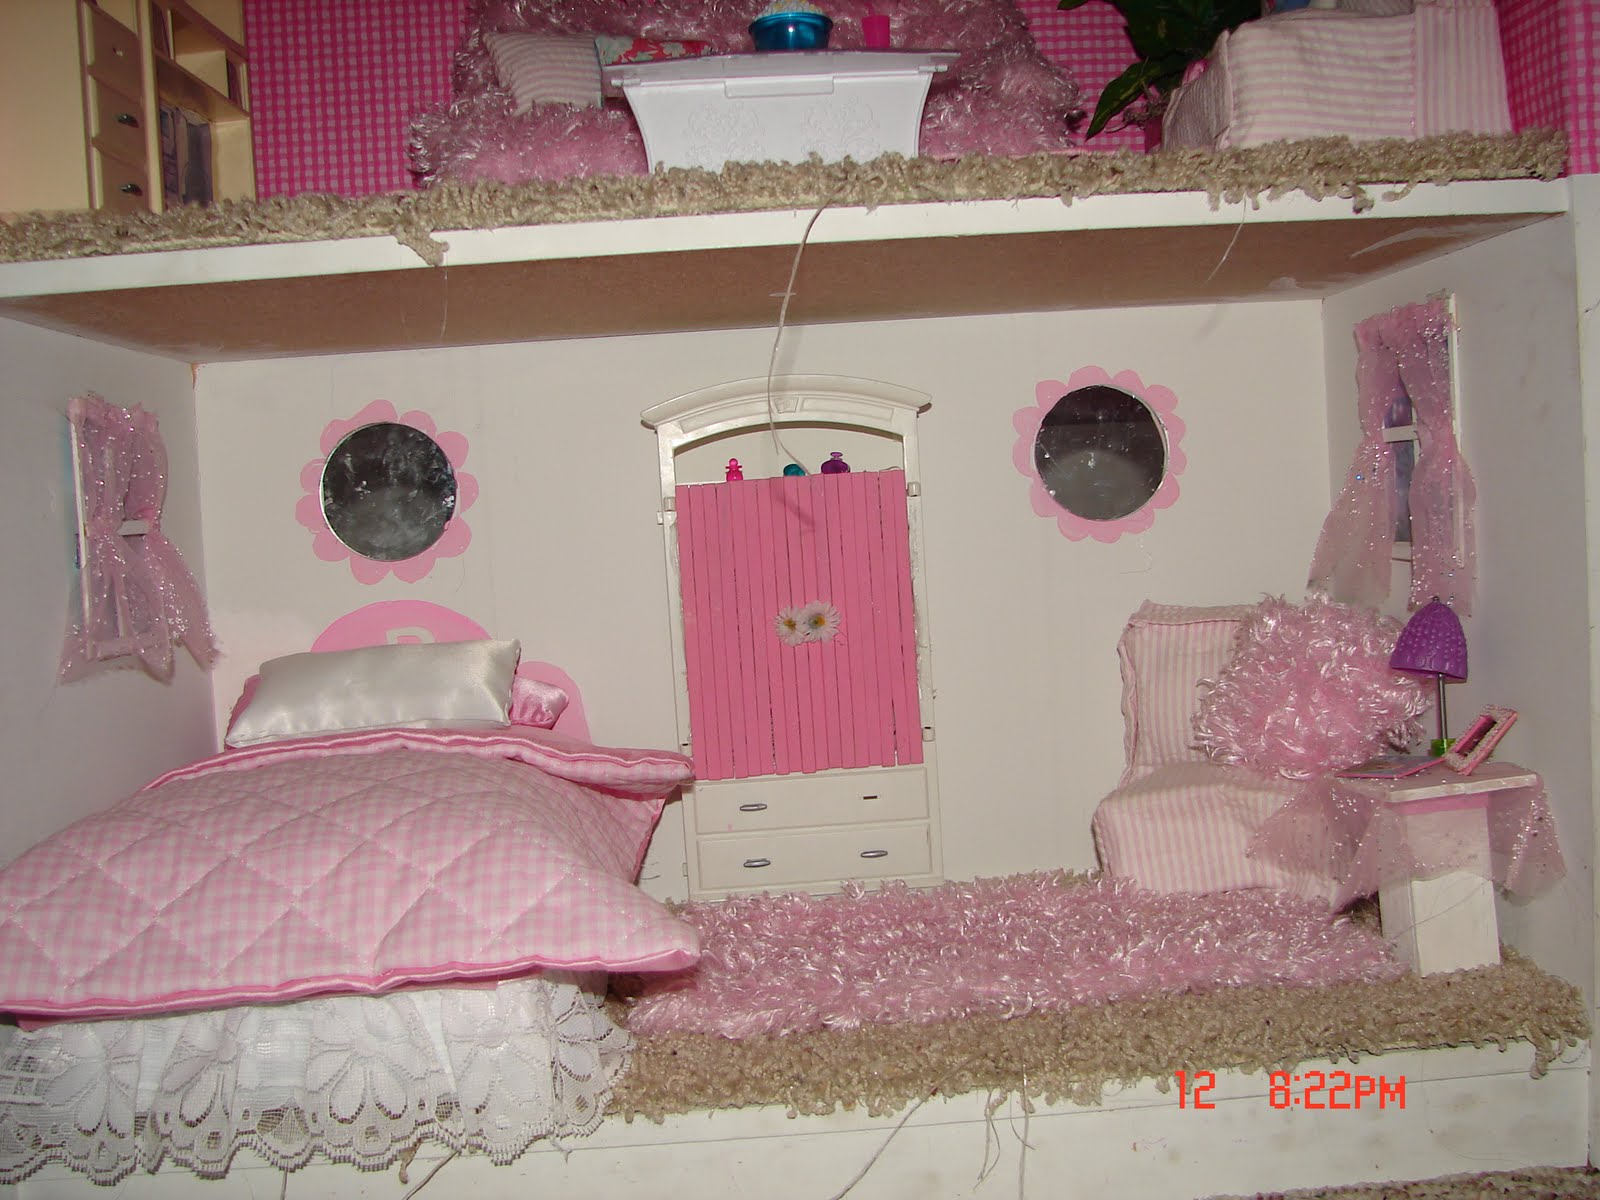 Barbie furniture patterns Dollhouse Barbie Diy Barbie House From Shelf Girl And Glue Gun Diy Barbie House From Shelf Girl And Glue Gun